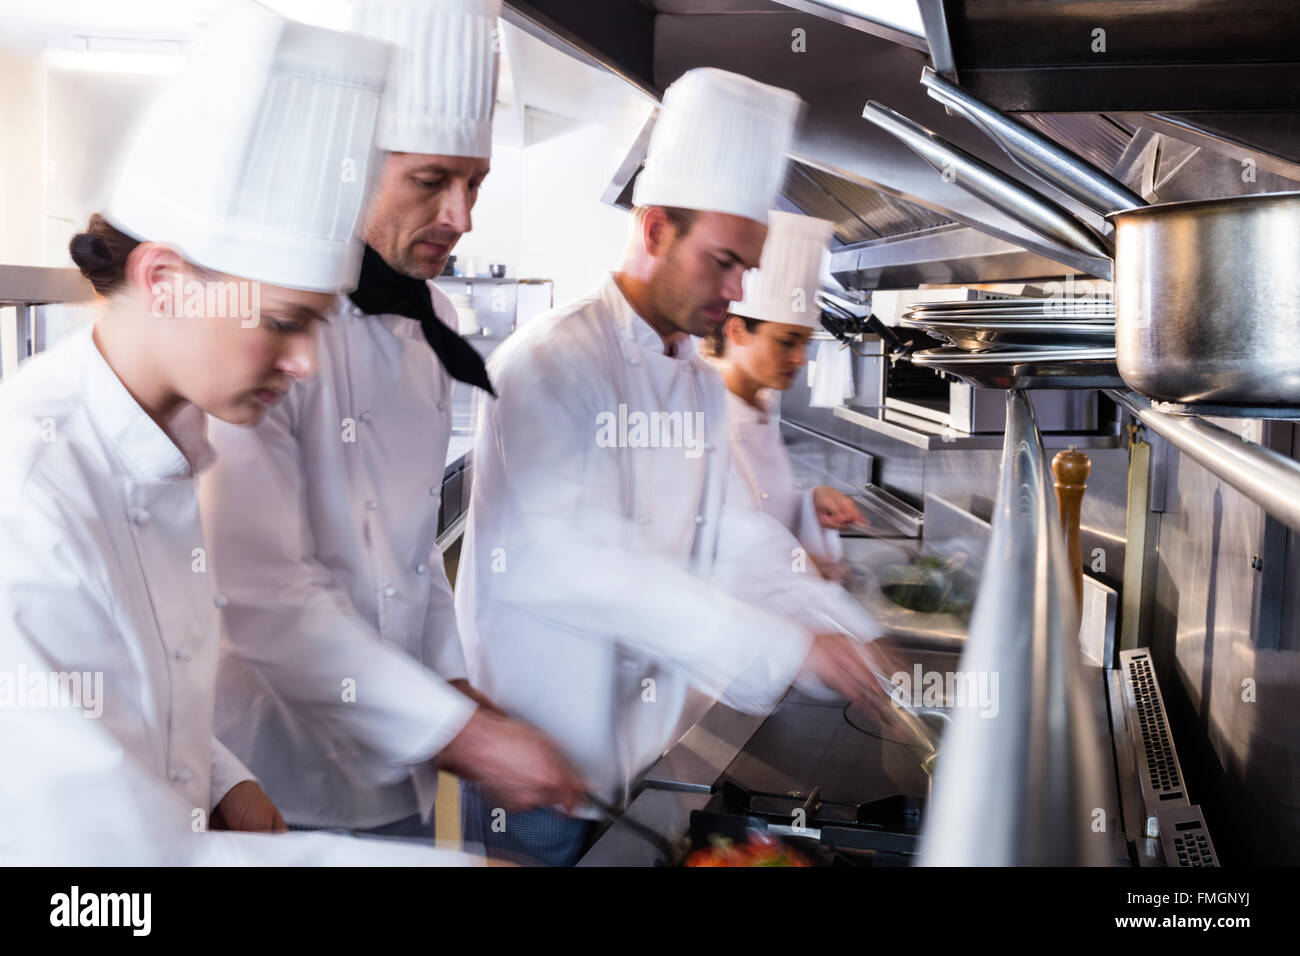 Chefs preparing food in the kitchen - Stock Image